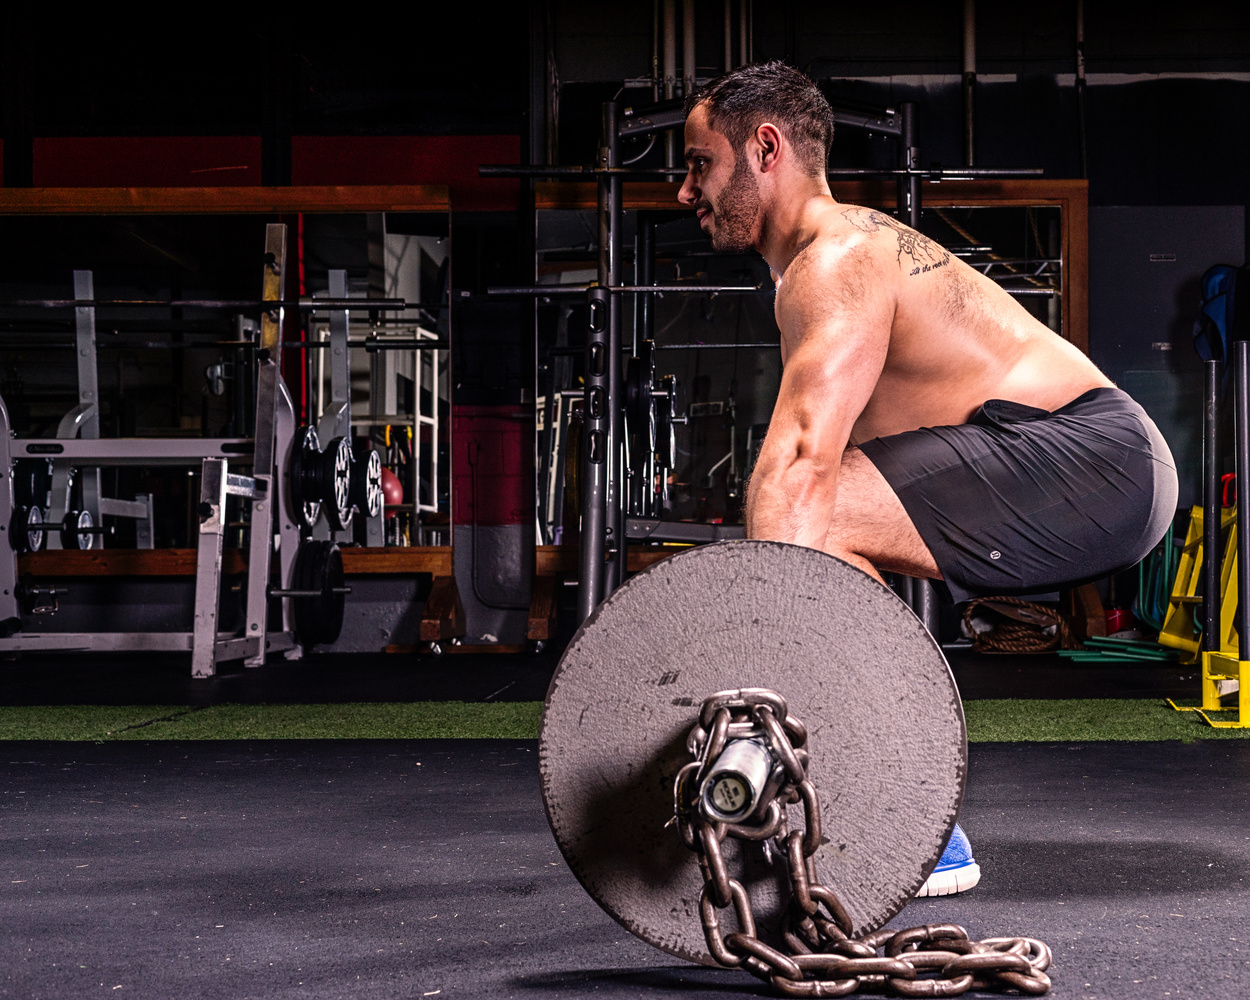 Fitness Rob Deadlift by Dave Curtis